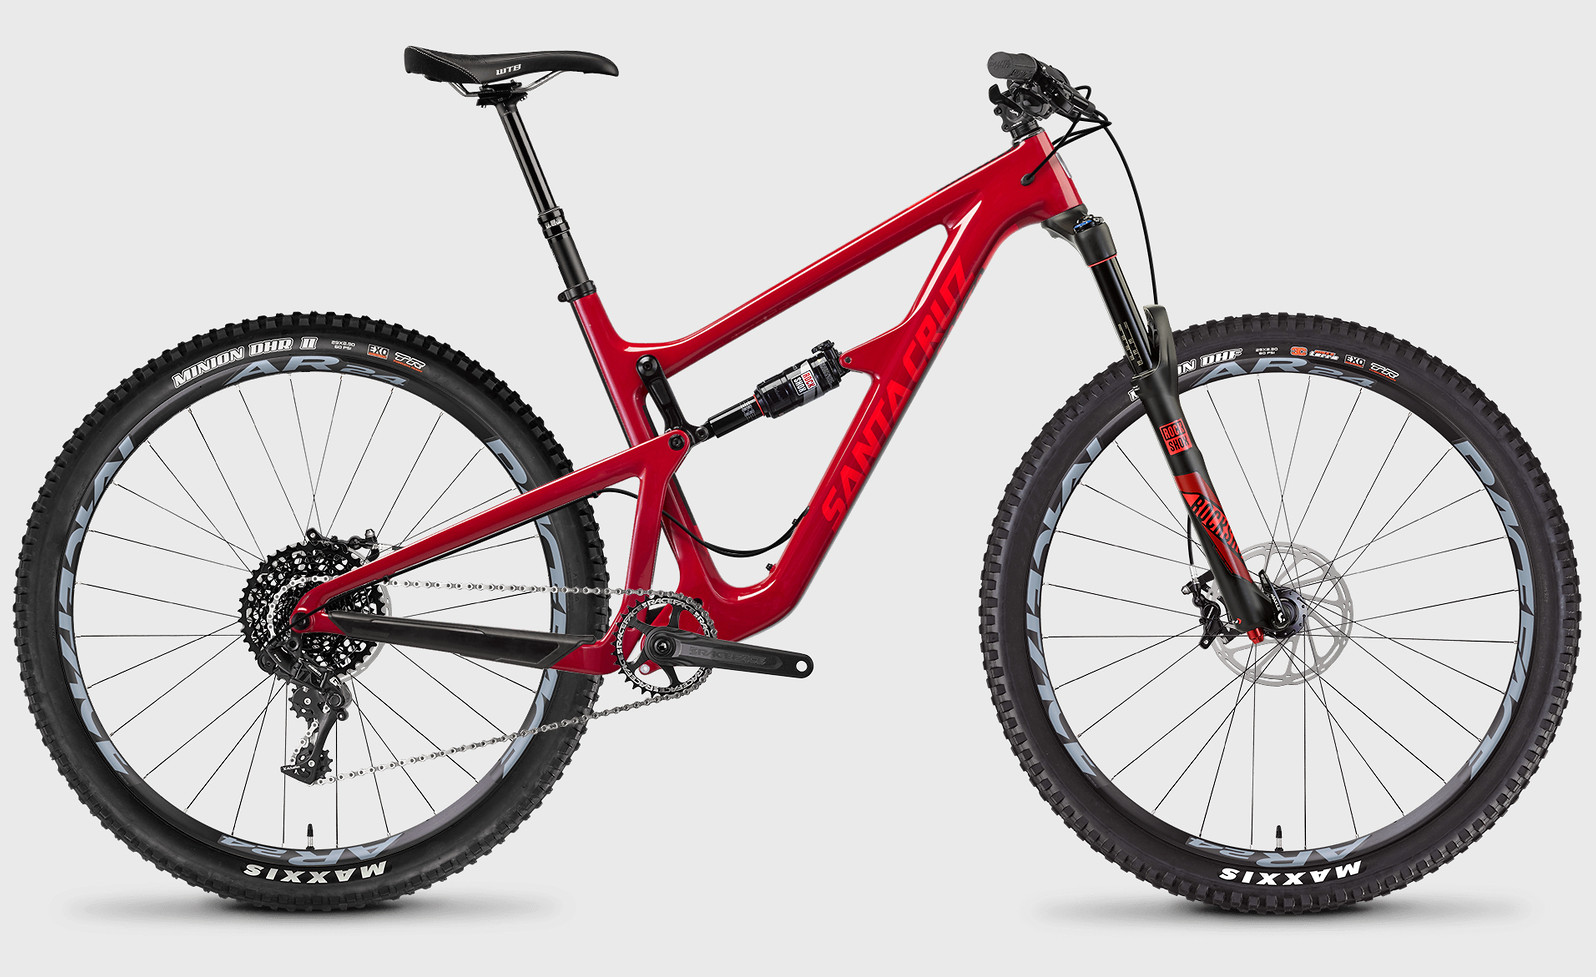 2017 Santa Cruz Hightower Carbon C S 29 - Reviews, Comparisons ... on